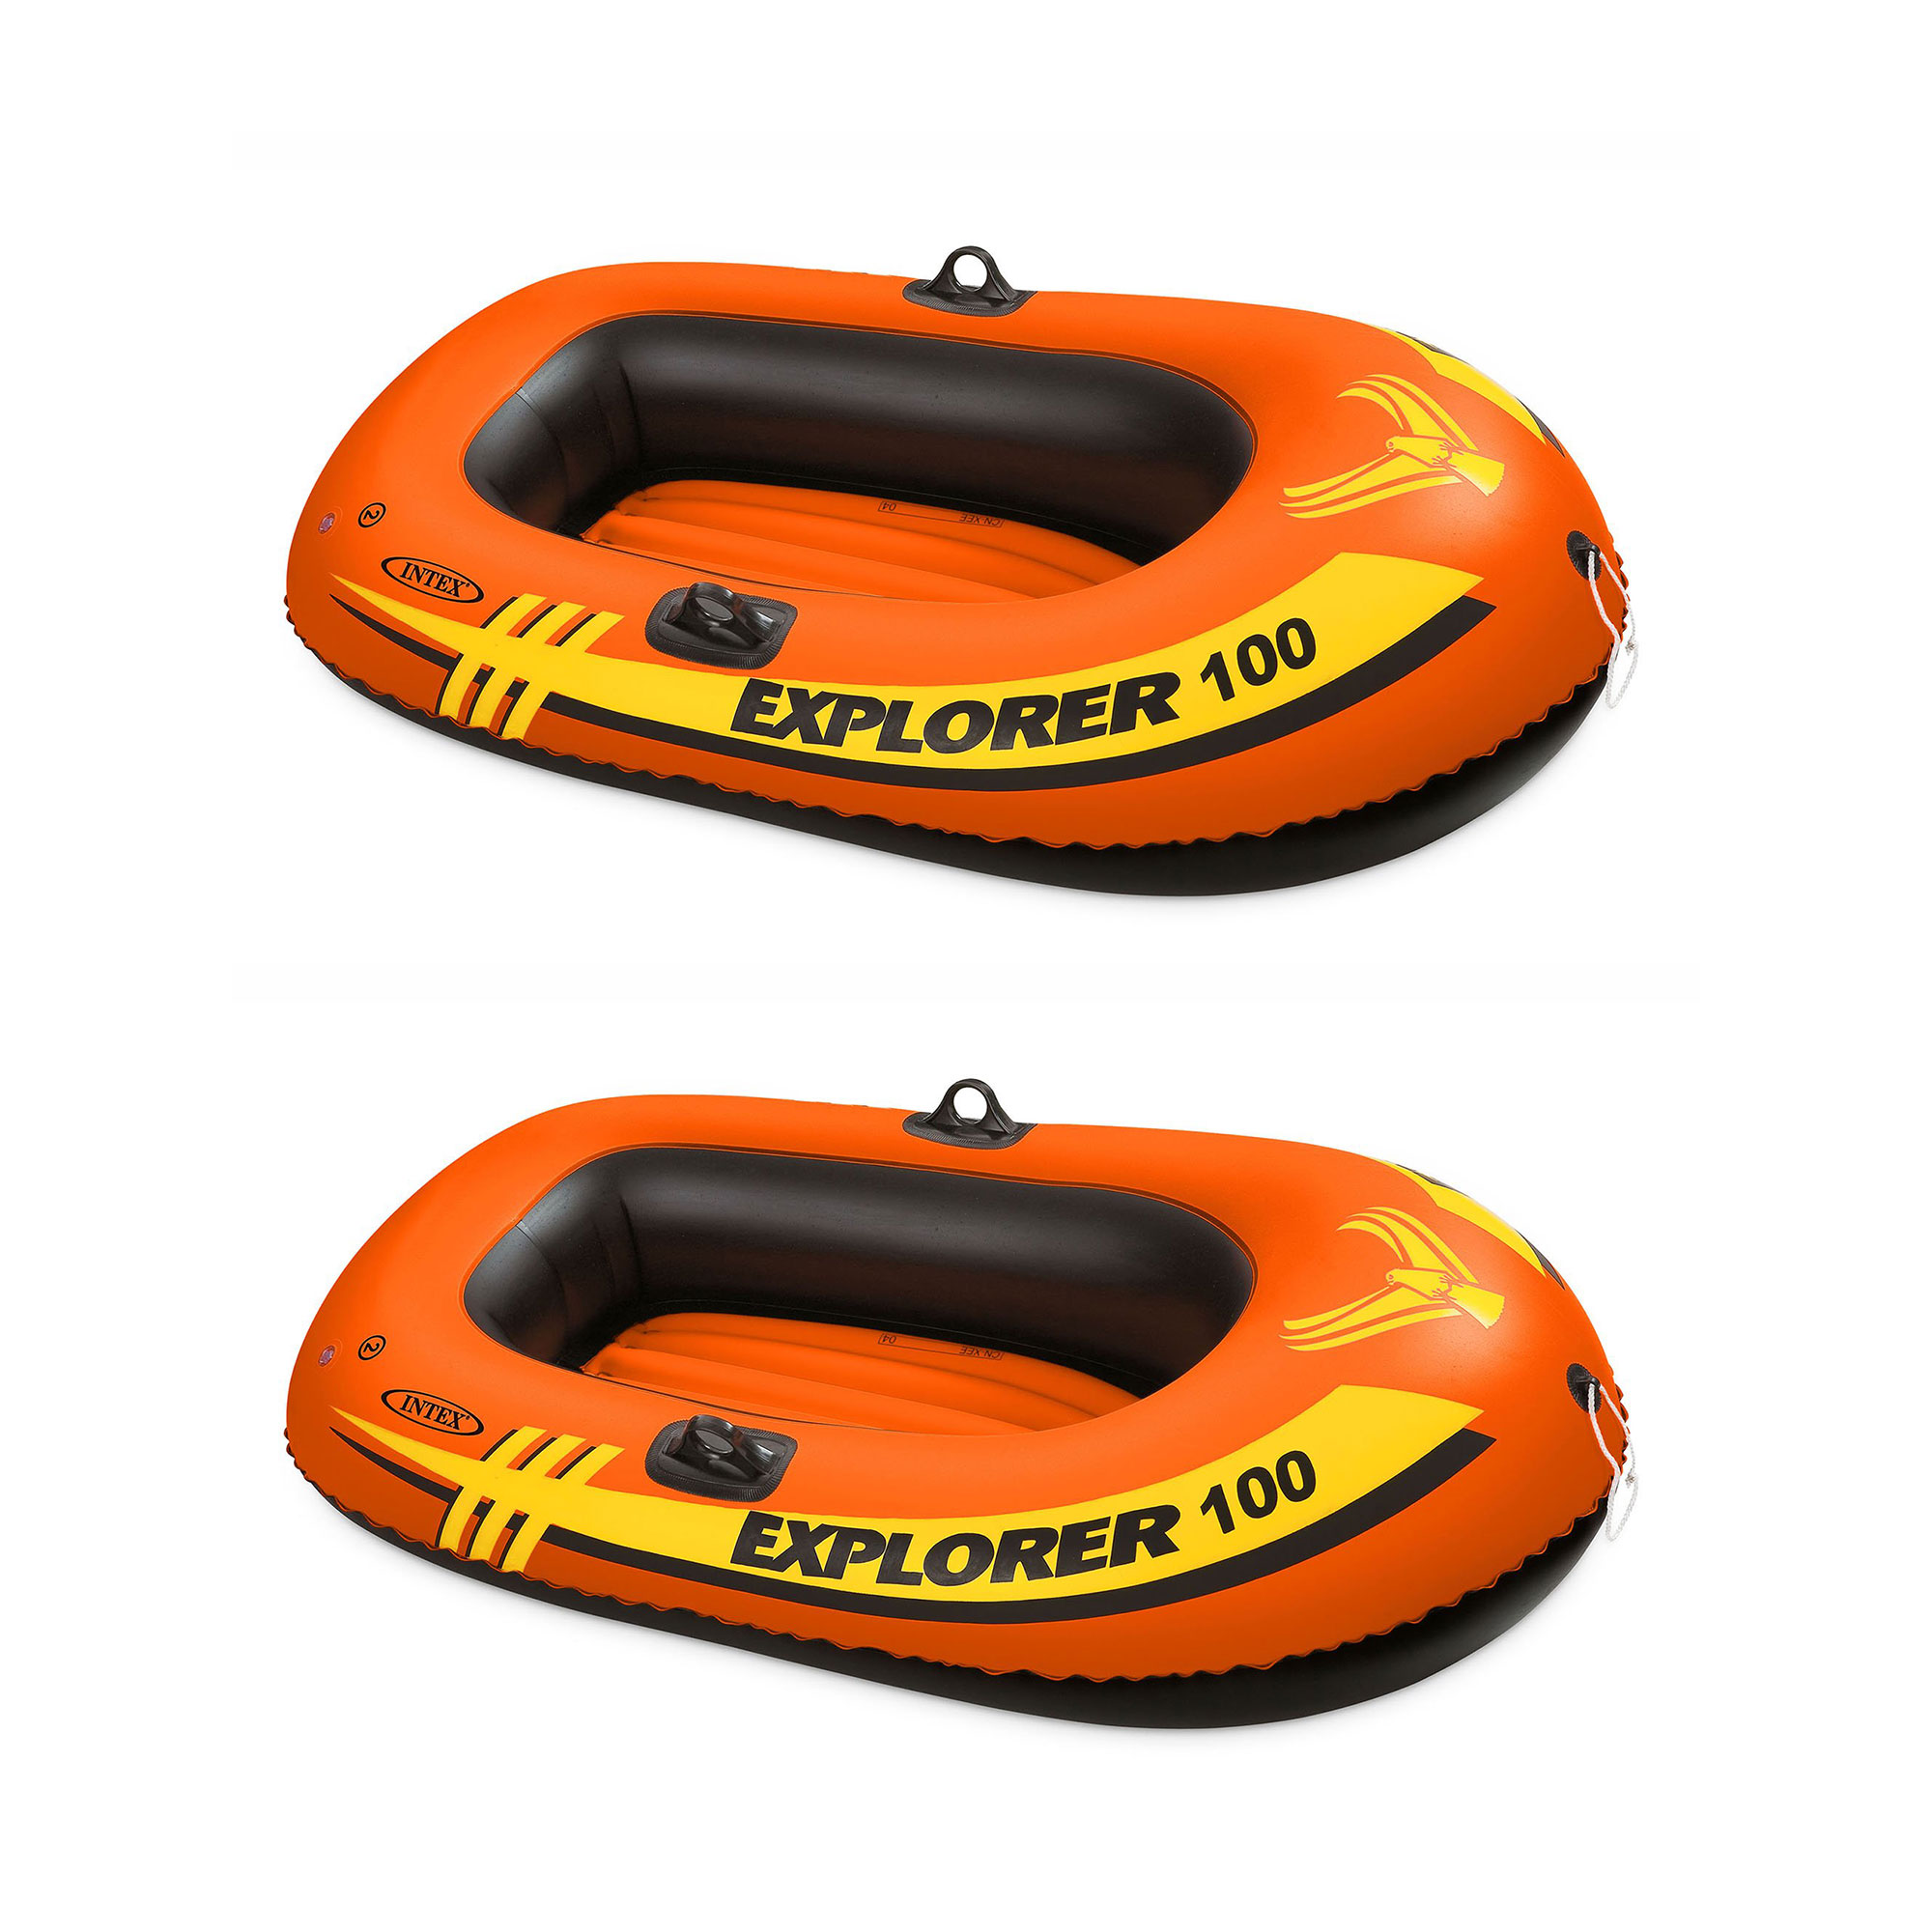 Intex Explorer 100 1 Person Youth Pool Lake Inflatable Raft Row Boat (2 Pack)